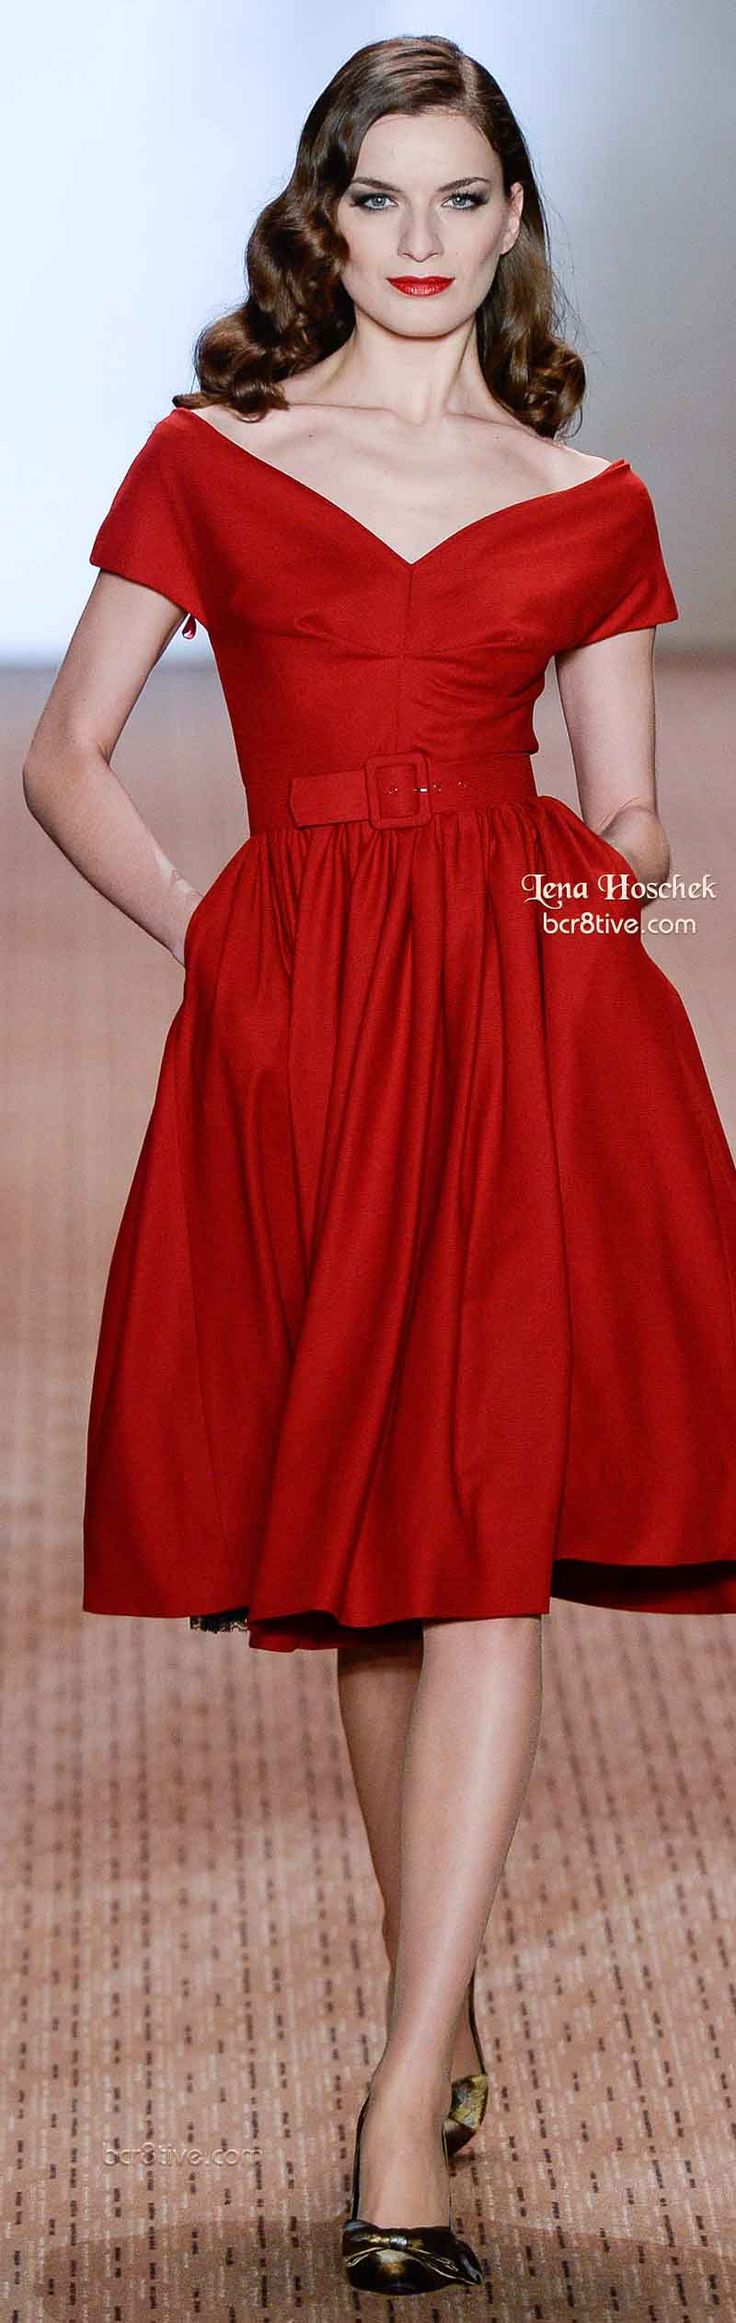 best vermelho red images on pinterest rouge dress red and red